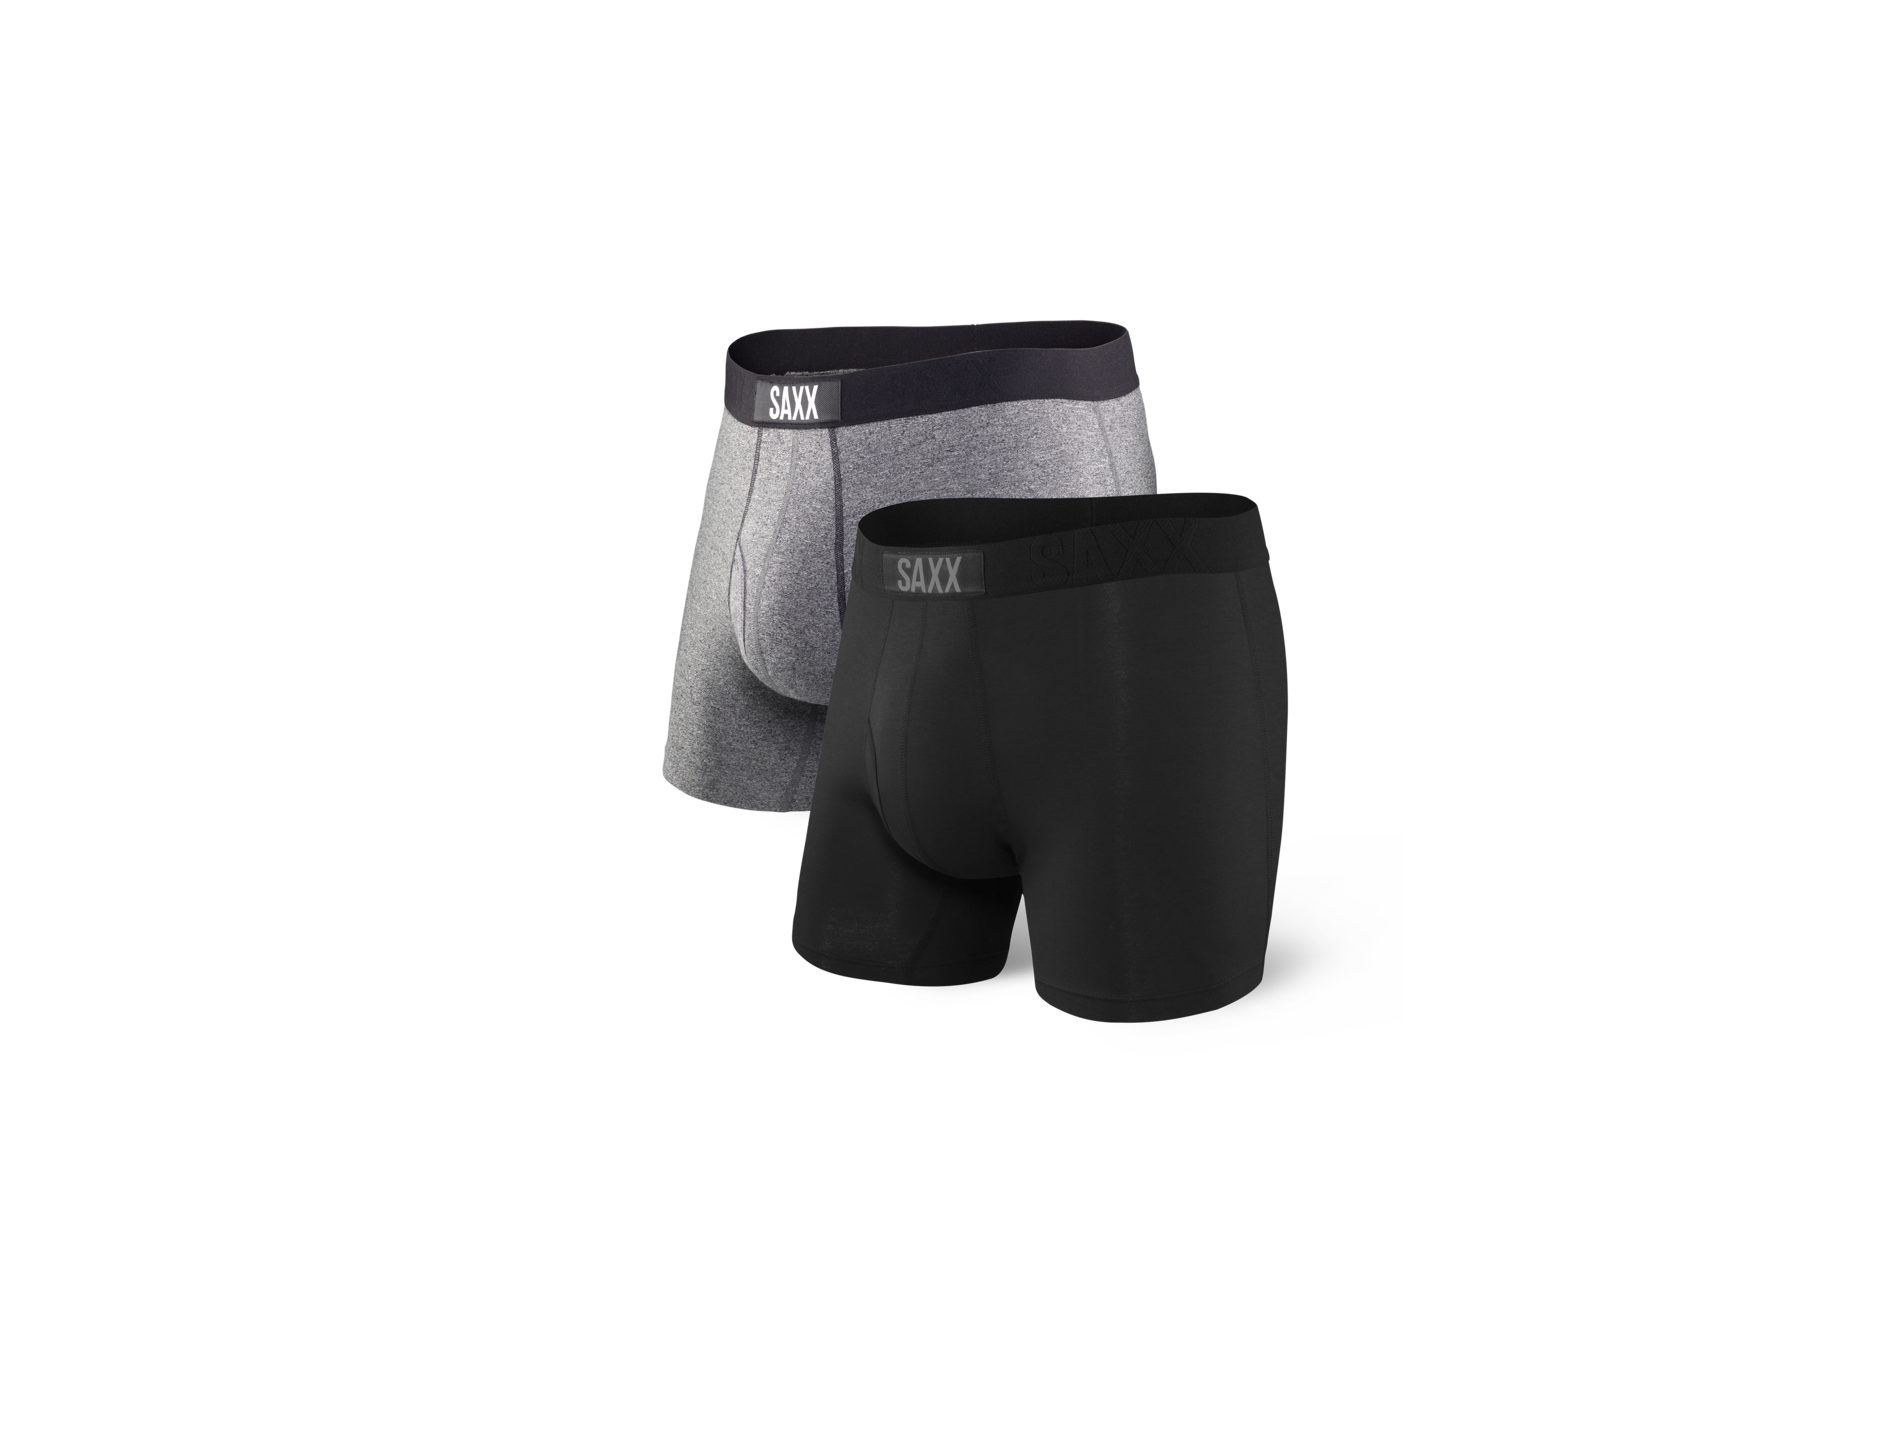 SAXX Boxer Brief 2 Pack Black/Salt Pepper